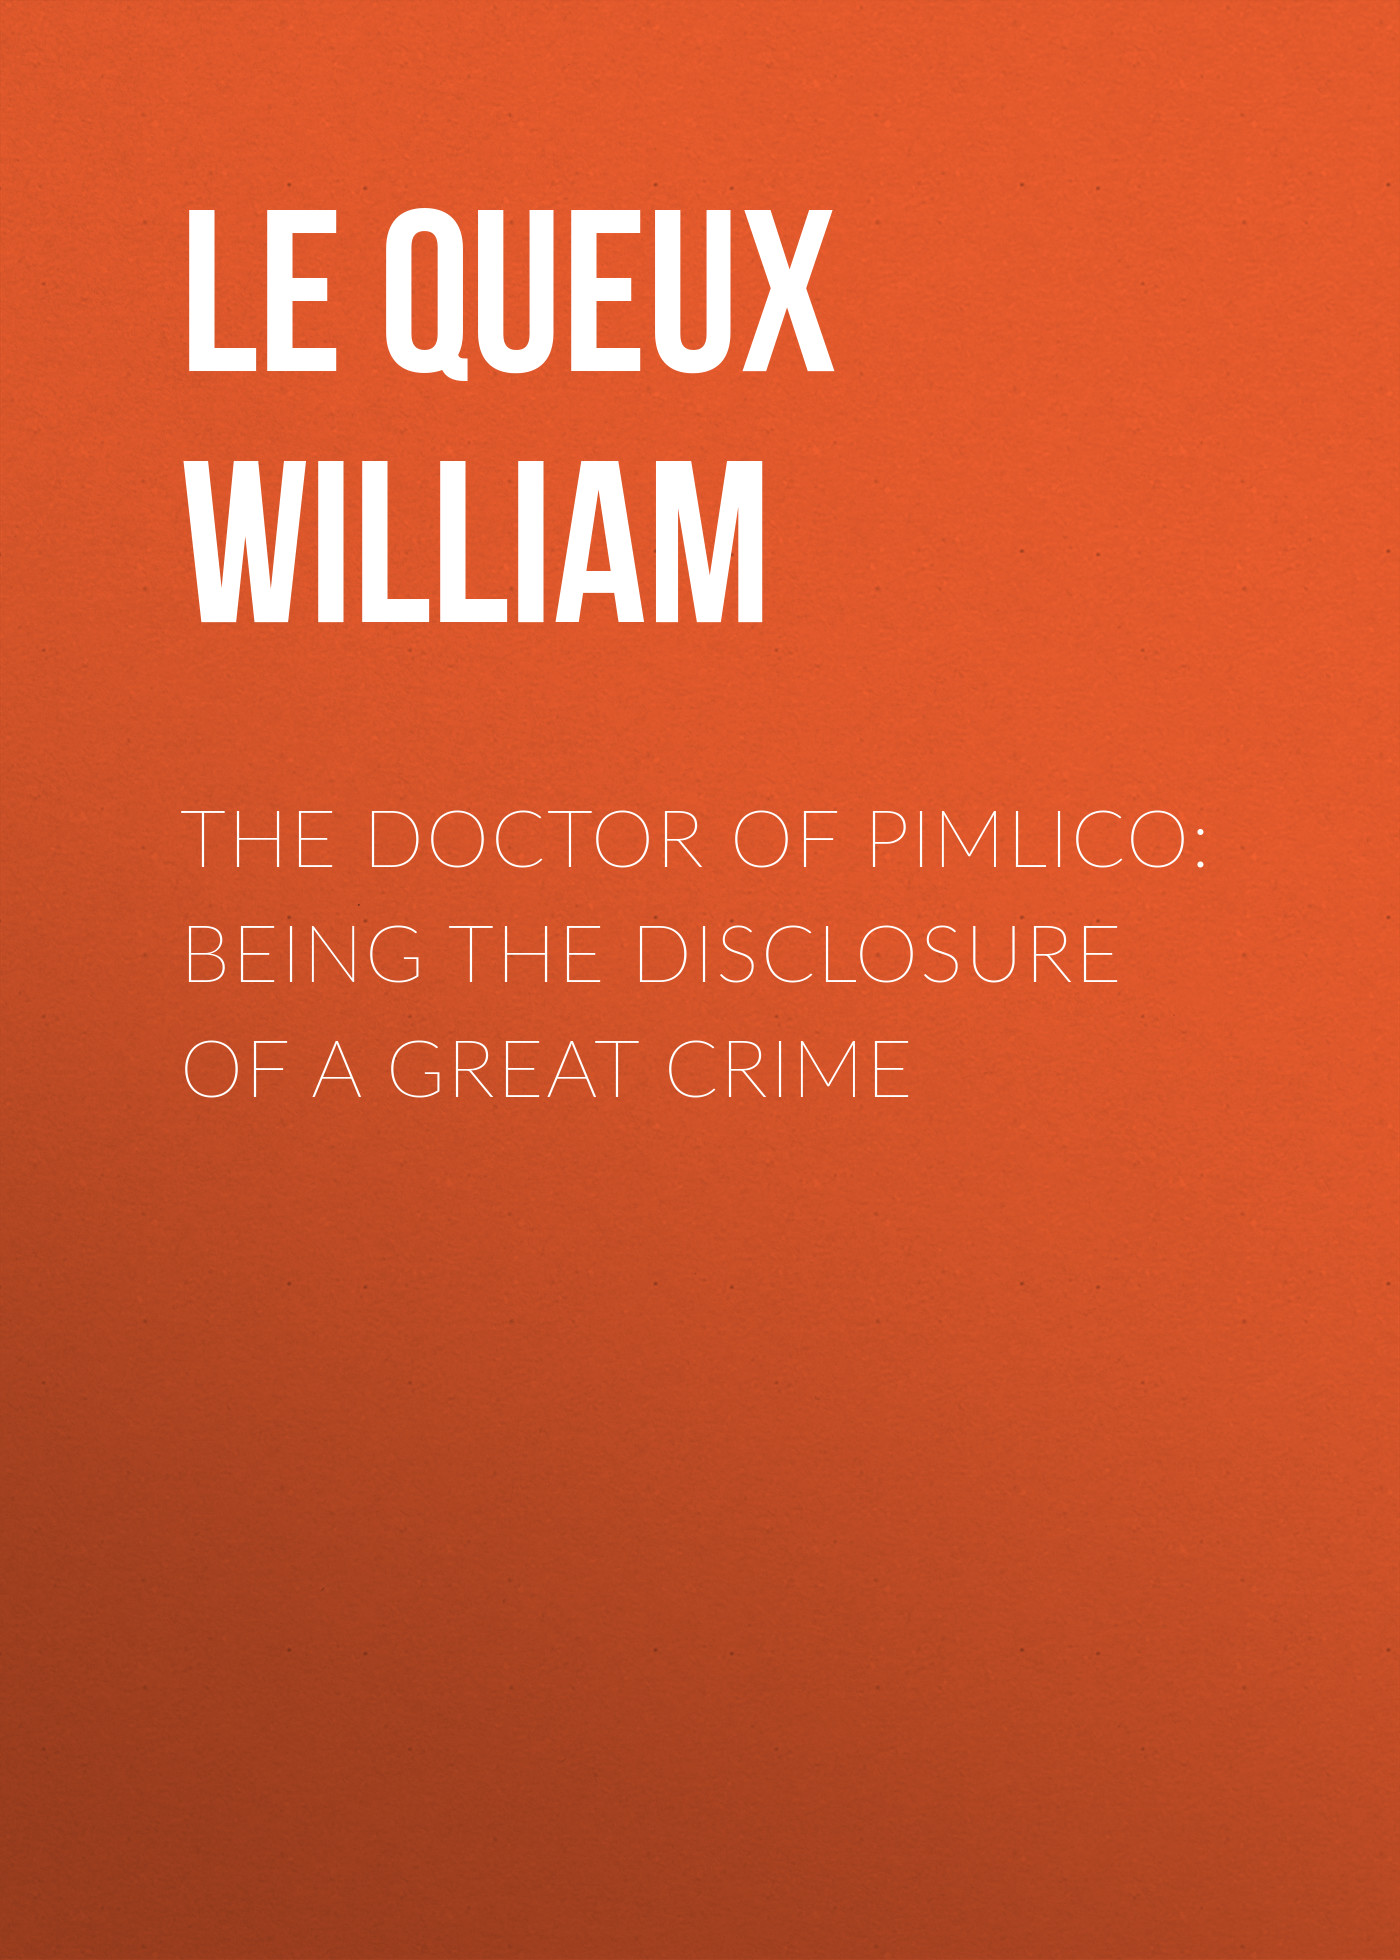 Le Queux William The Doctor of Pimlico: Being the Disclosure of a Great Crime john william allen the danger of peace being the substance of a lecture delivered at king s college london on may 1